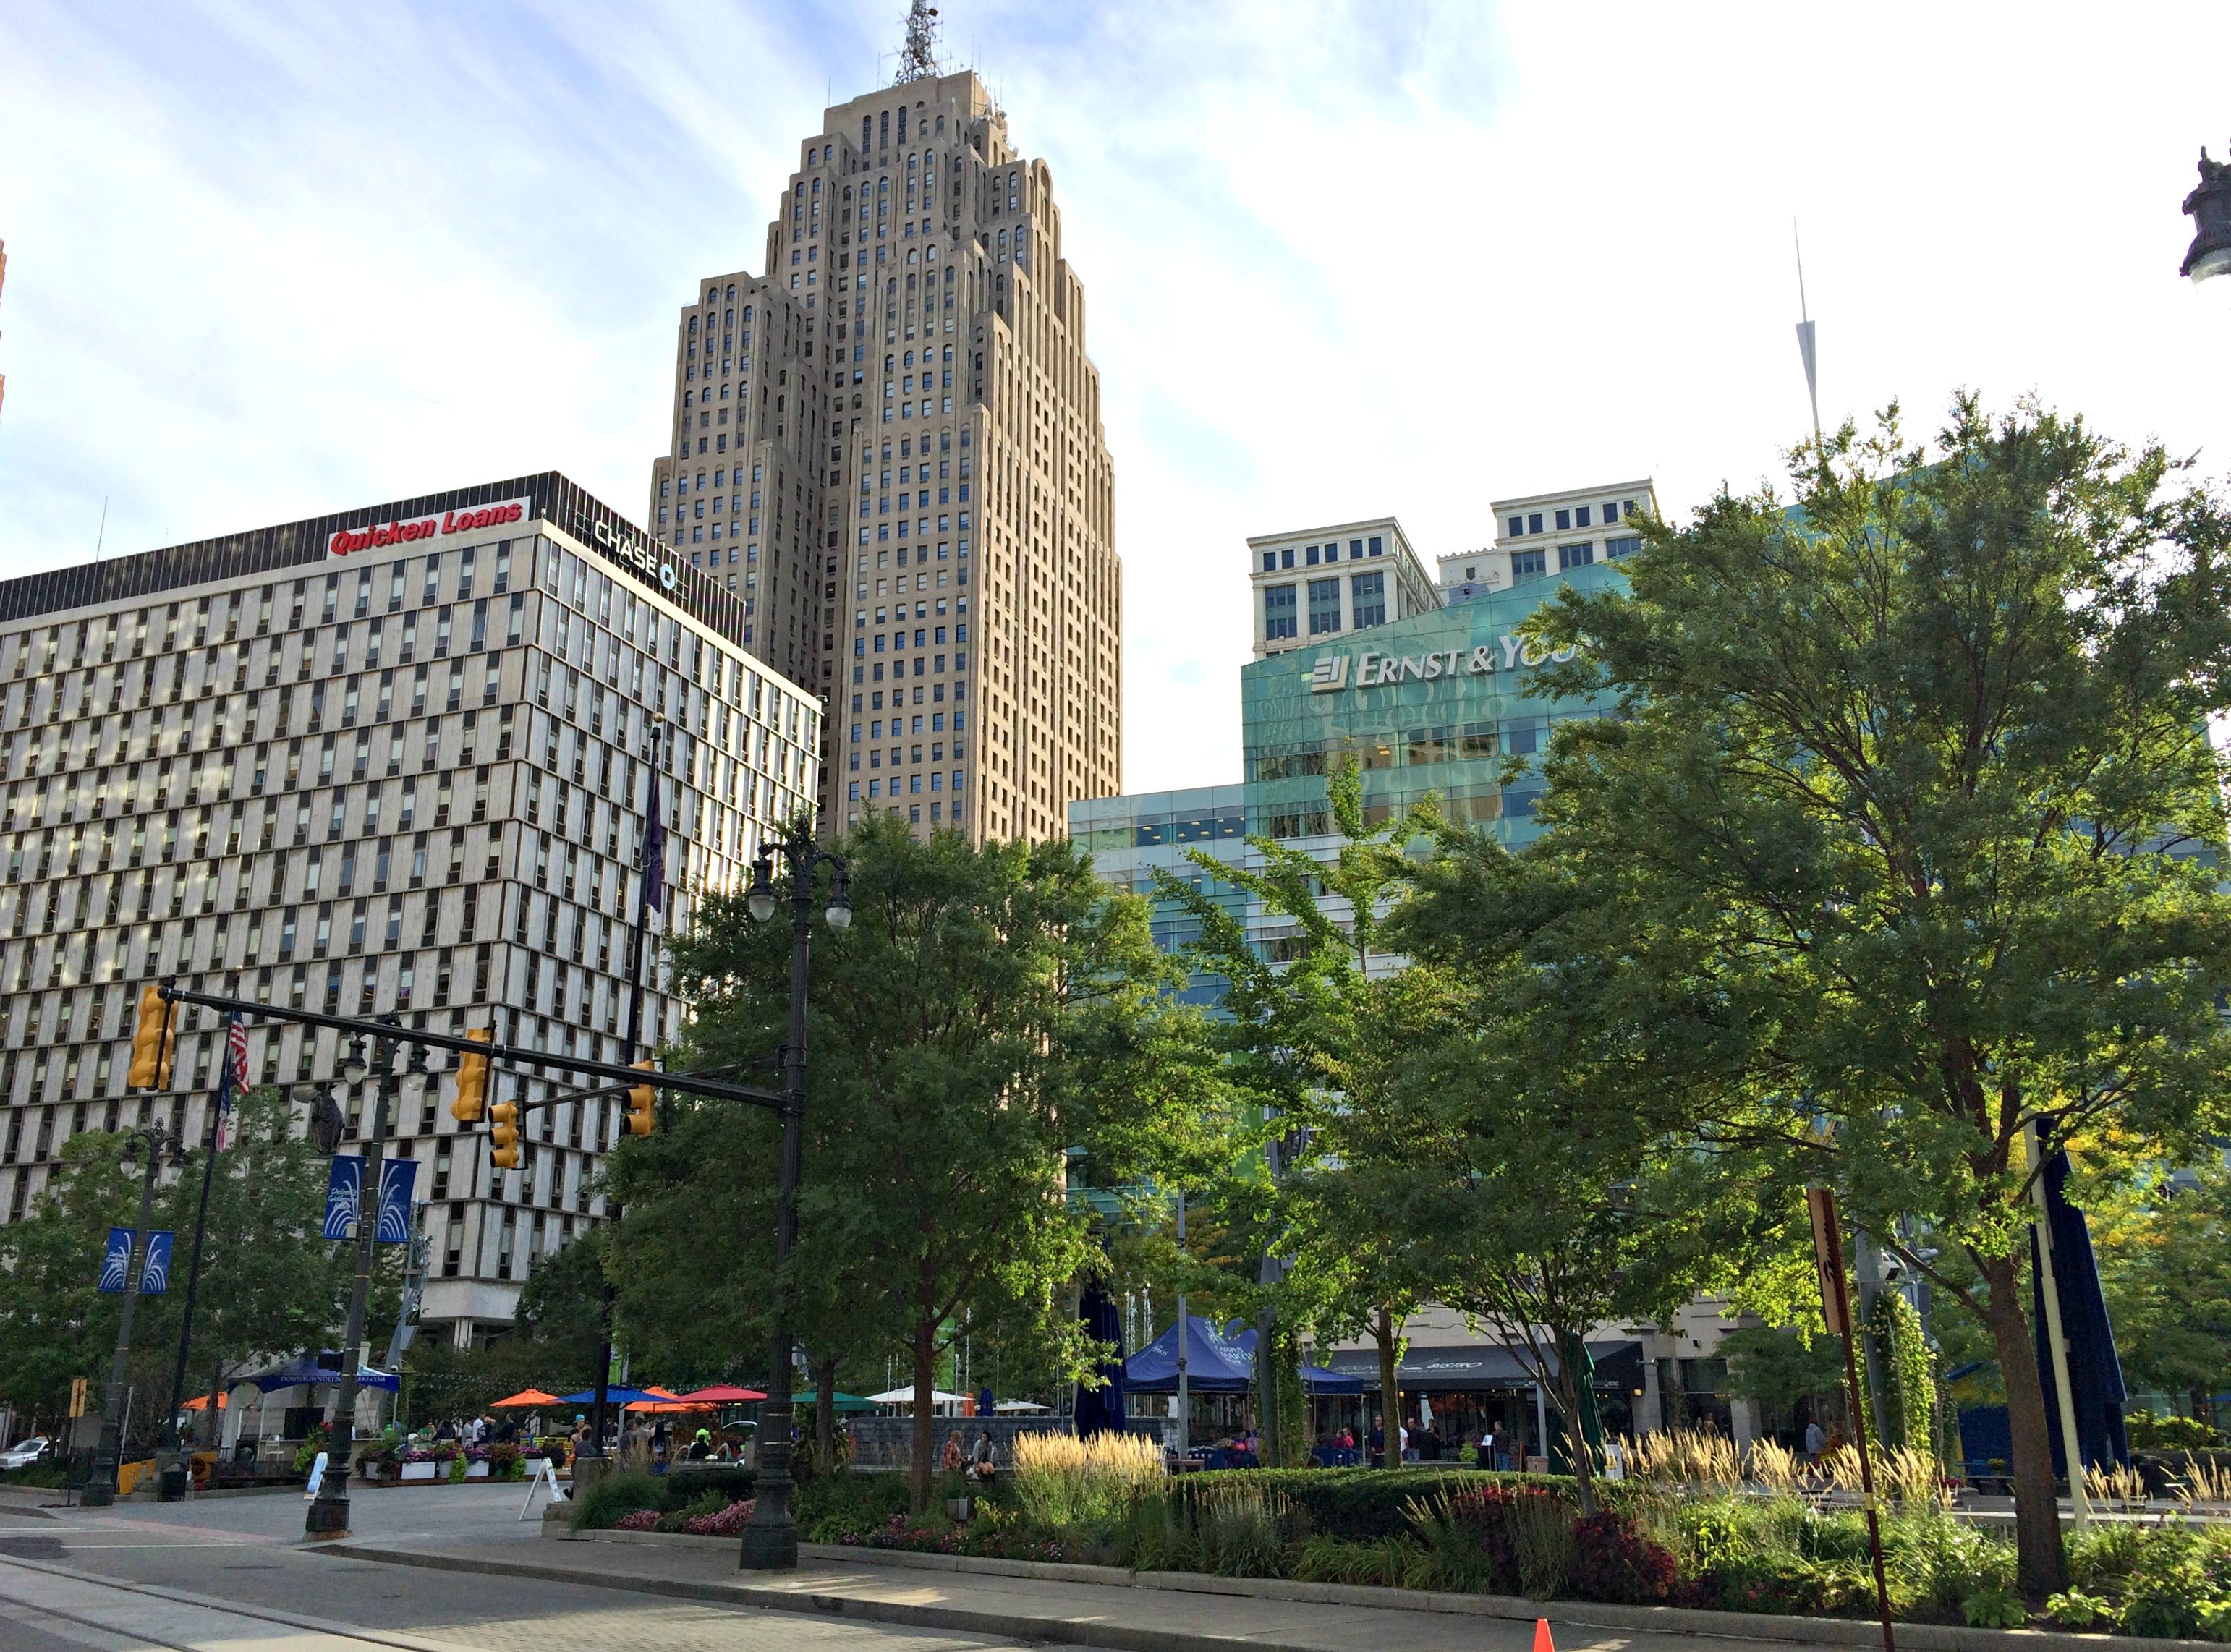 downtown detroit campus martius park